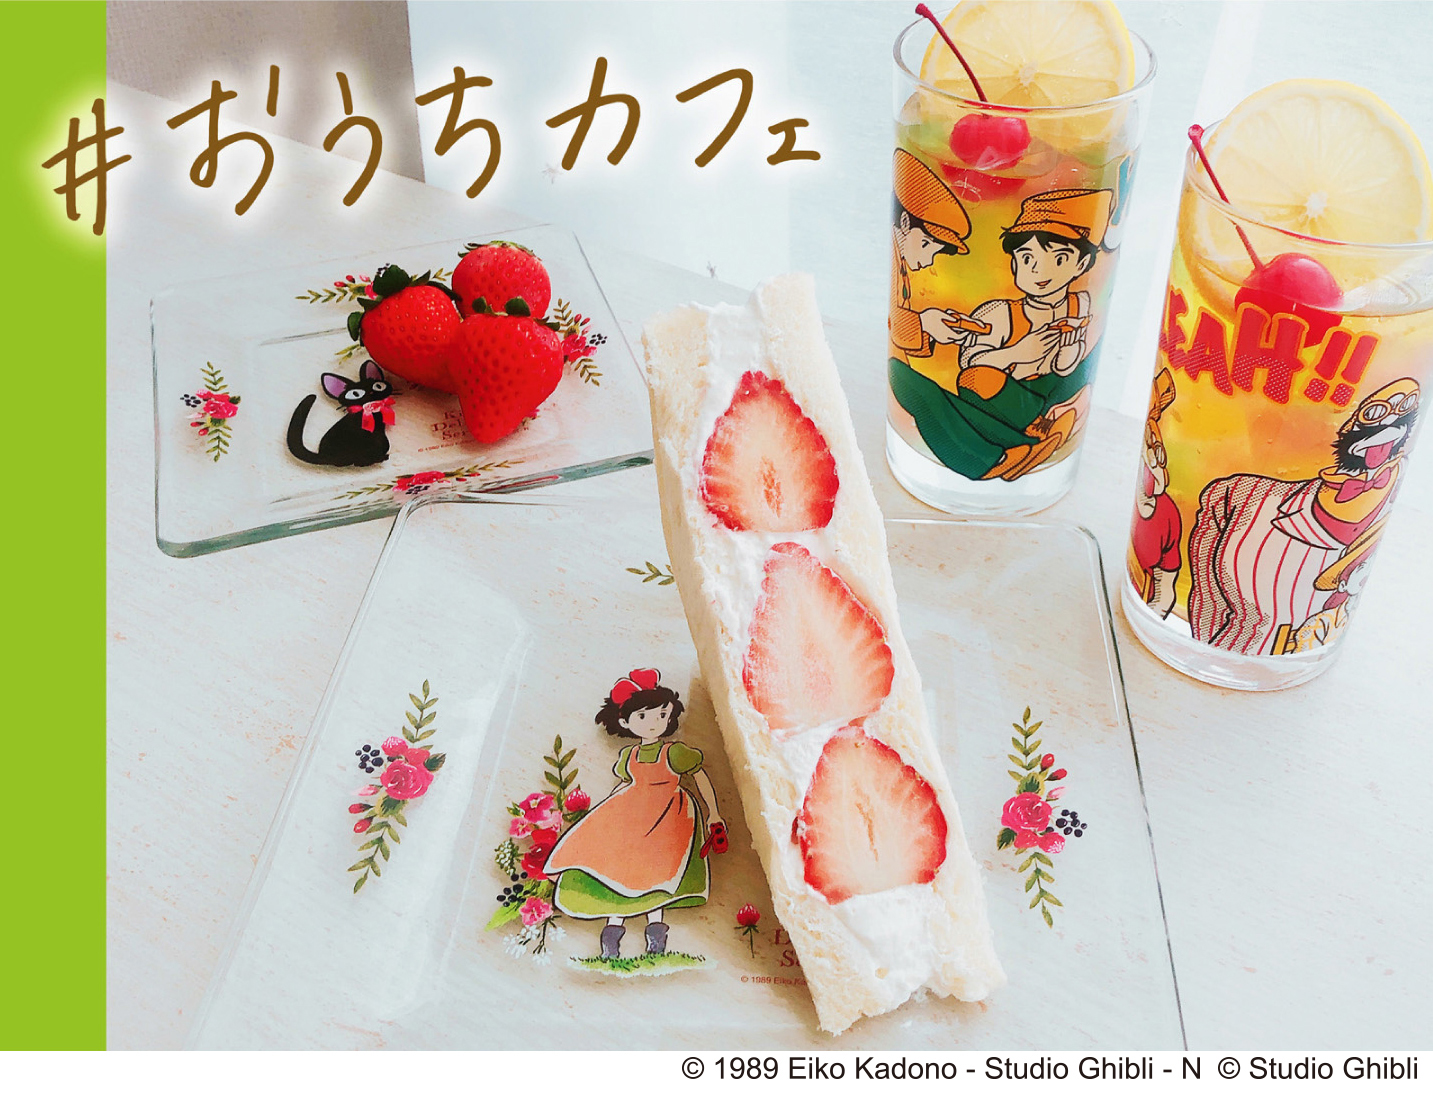 Stay Home with the New Studio Ghibli Vintage Glass Collection!